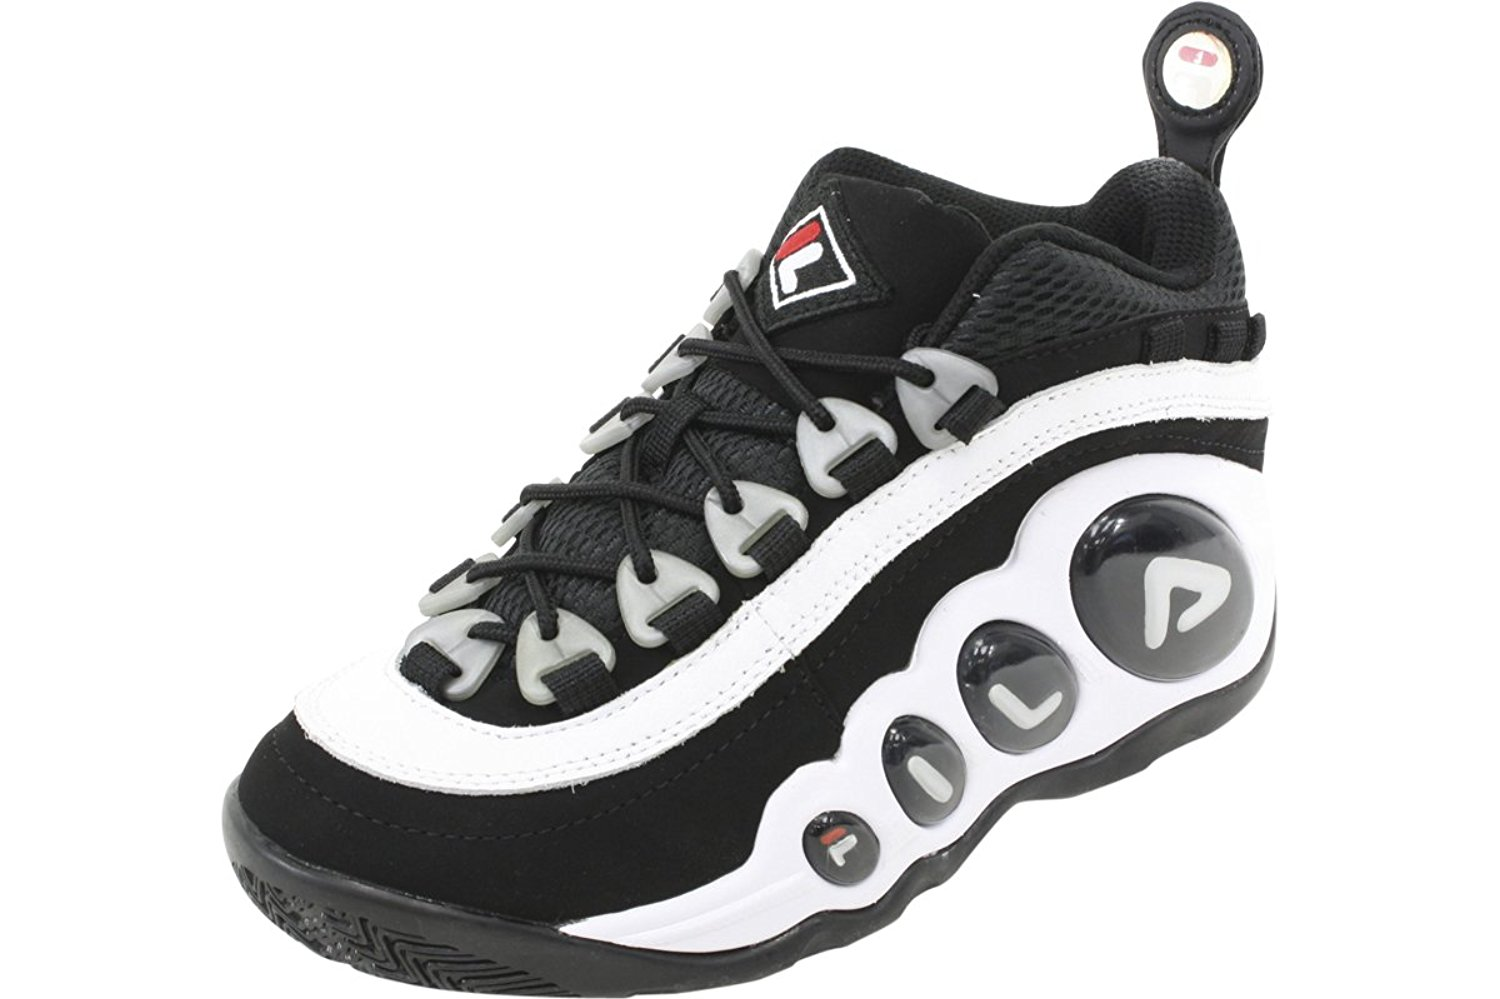 406a84540b15 Get Quotations · Fila Men s Bubbles Hightop White Black Red Basketball Shoes